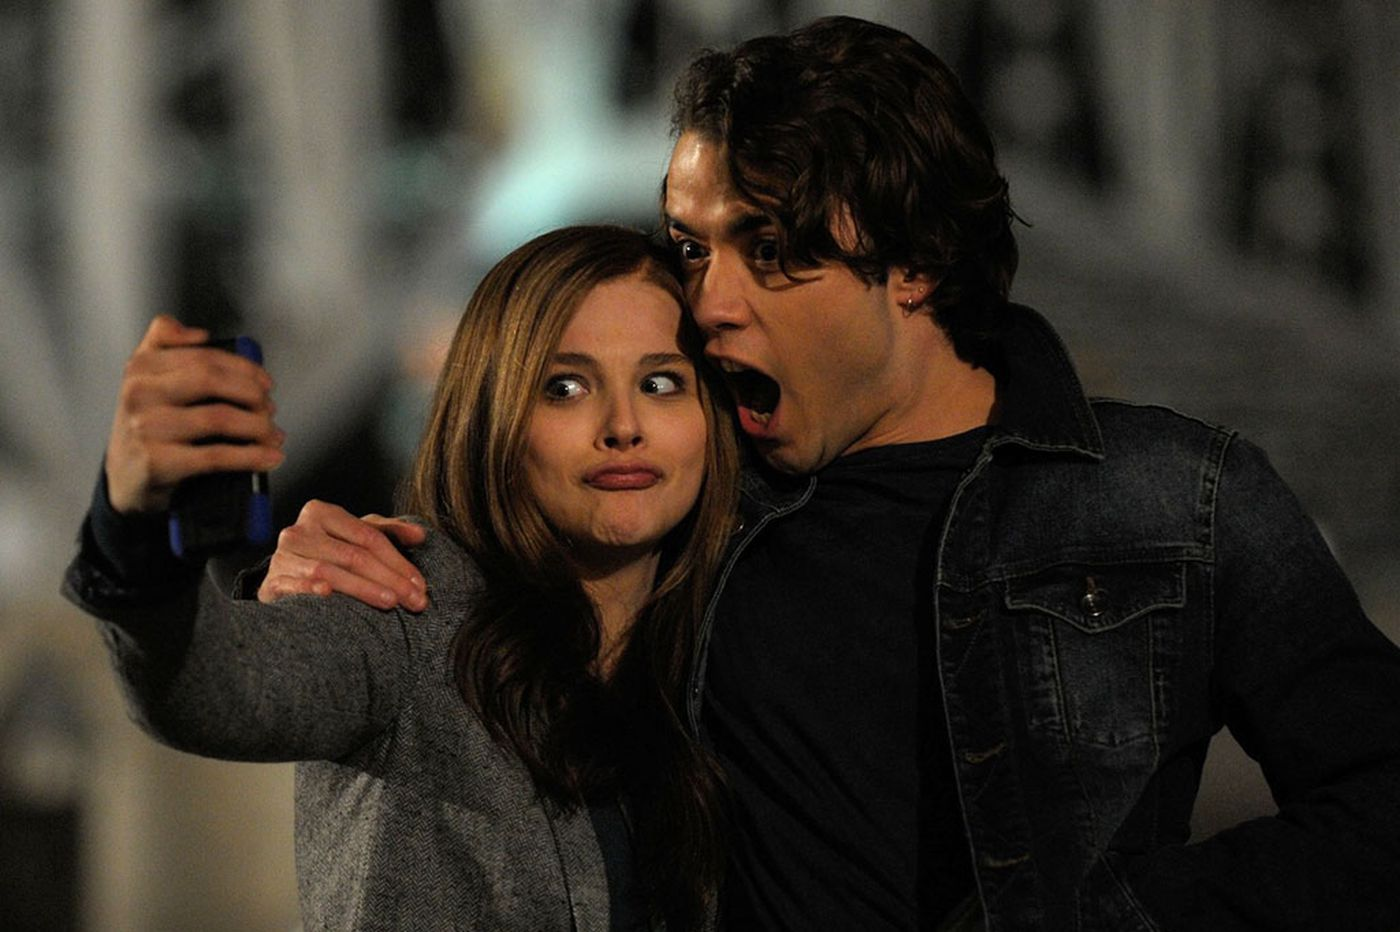 'If I Stay': Earnest melodrama of teen love amid Death